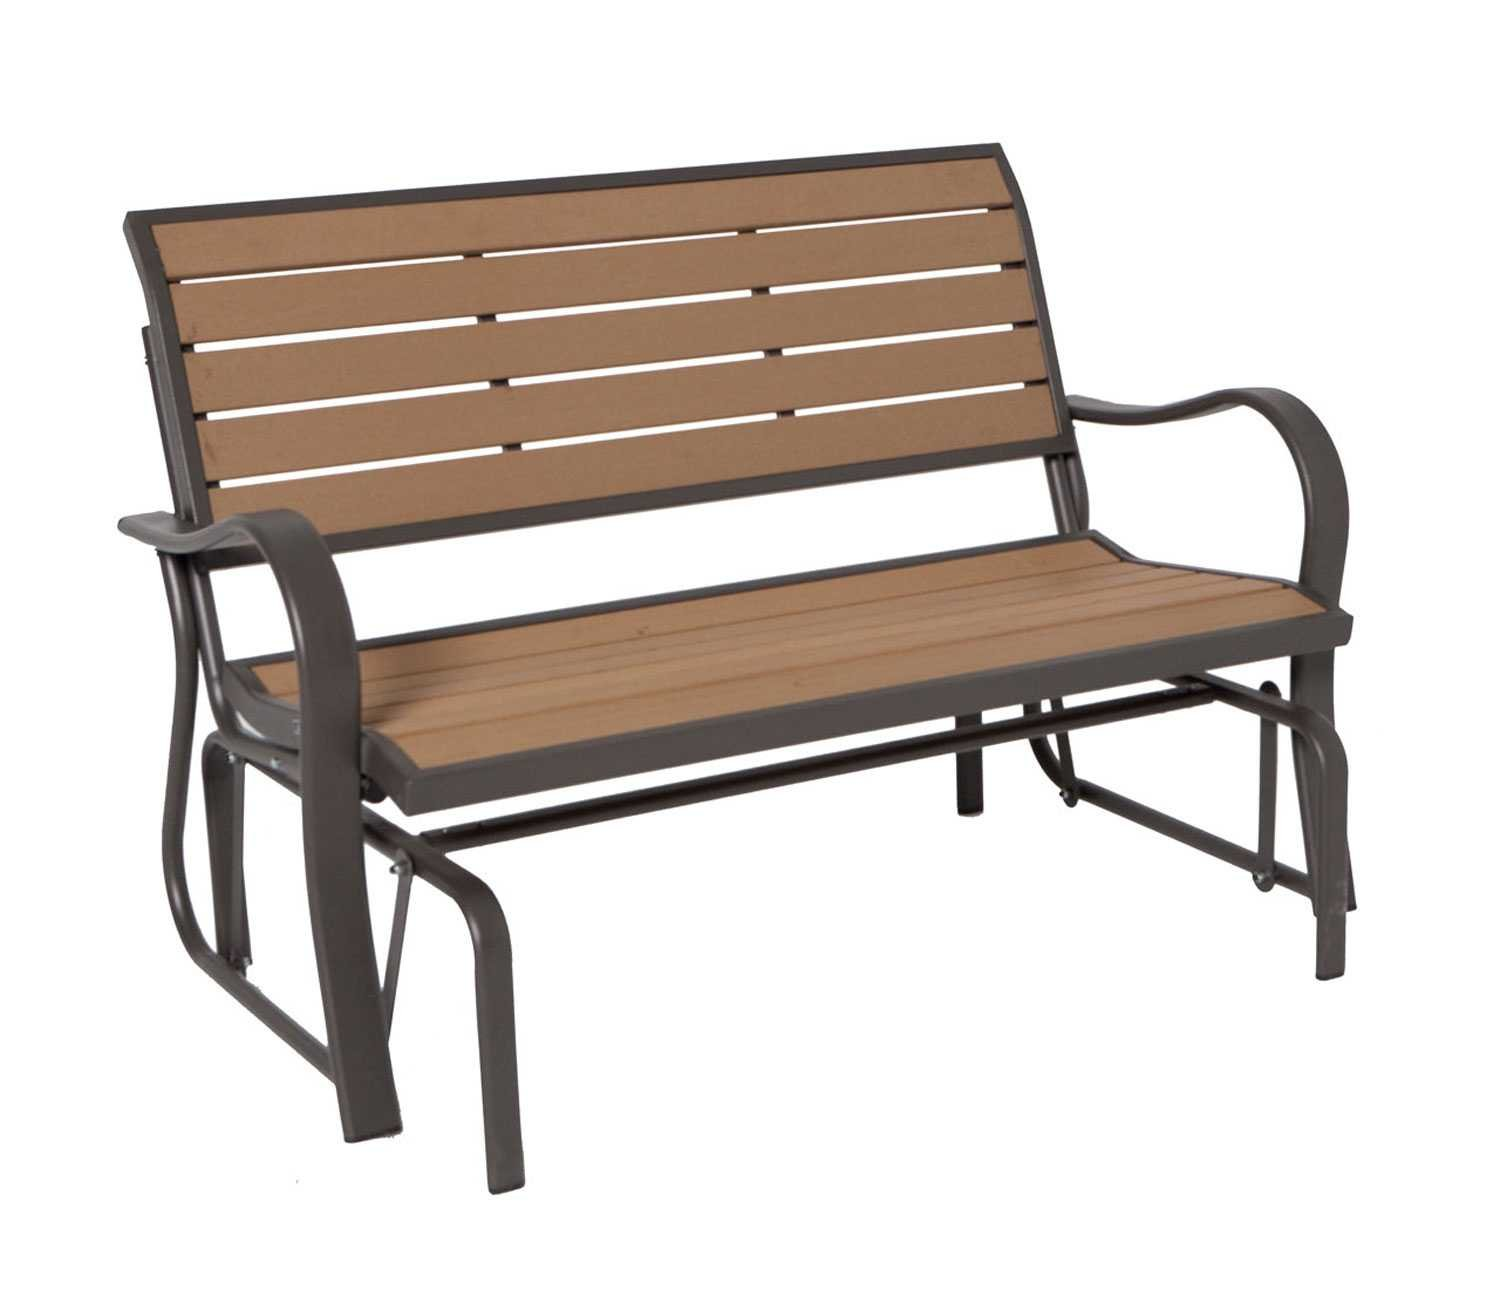 benches garden furniture home decoration club On outdoor furniture bench